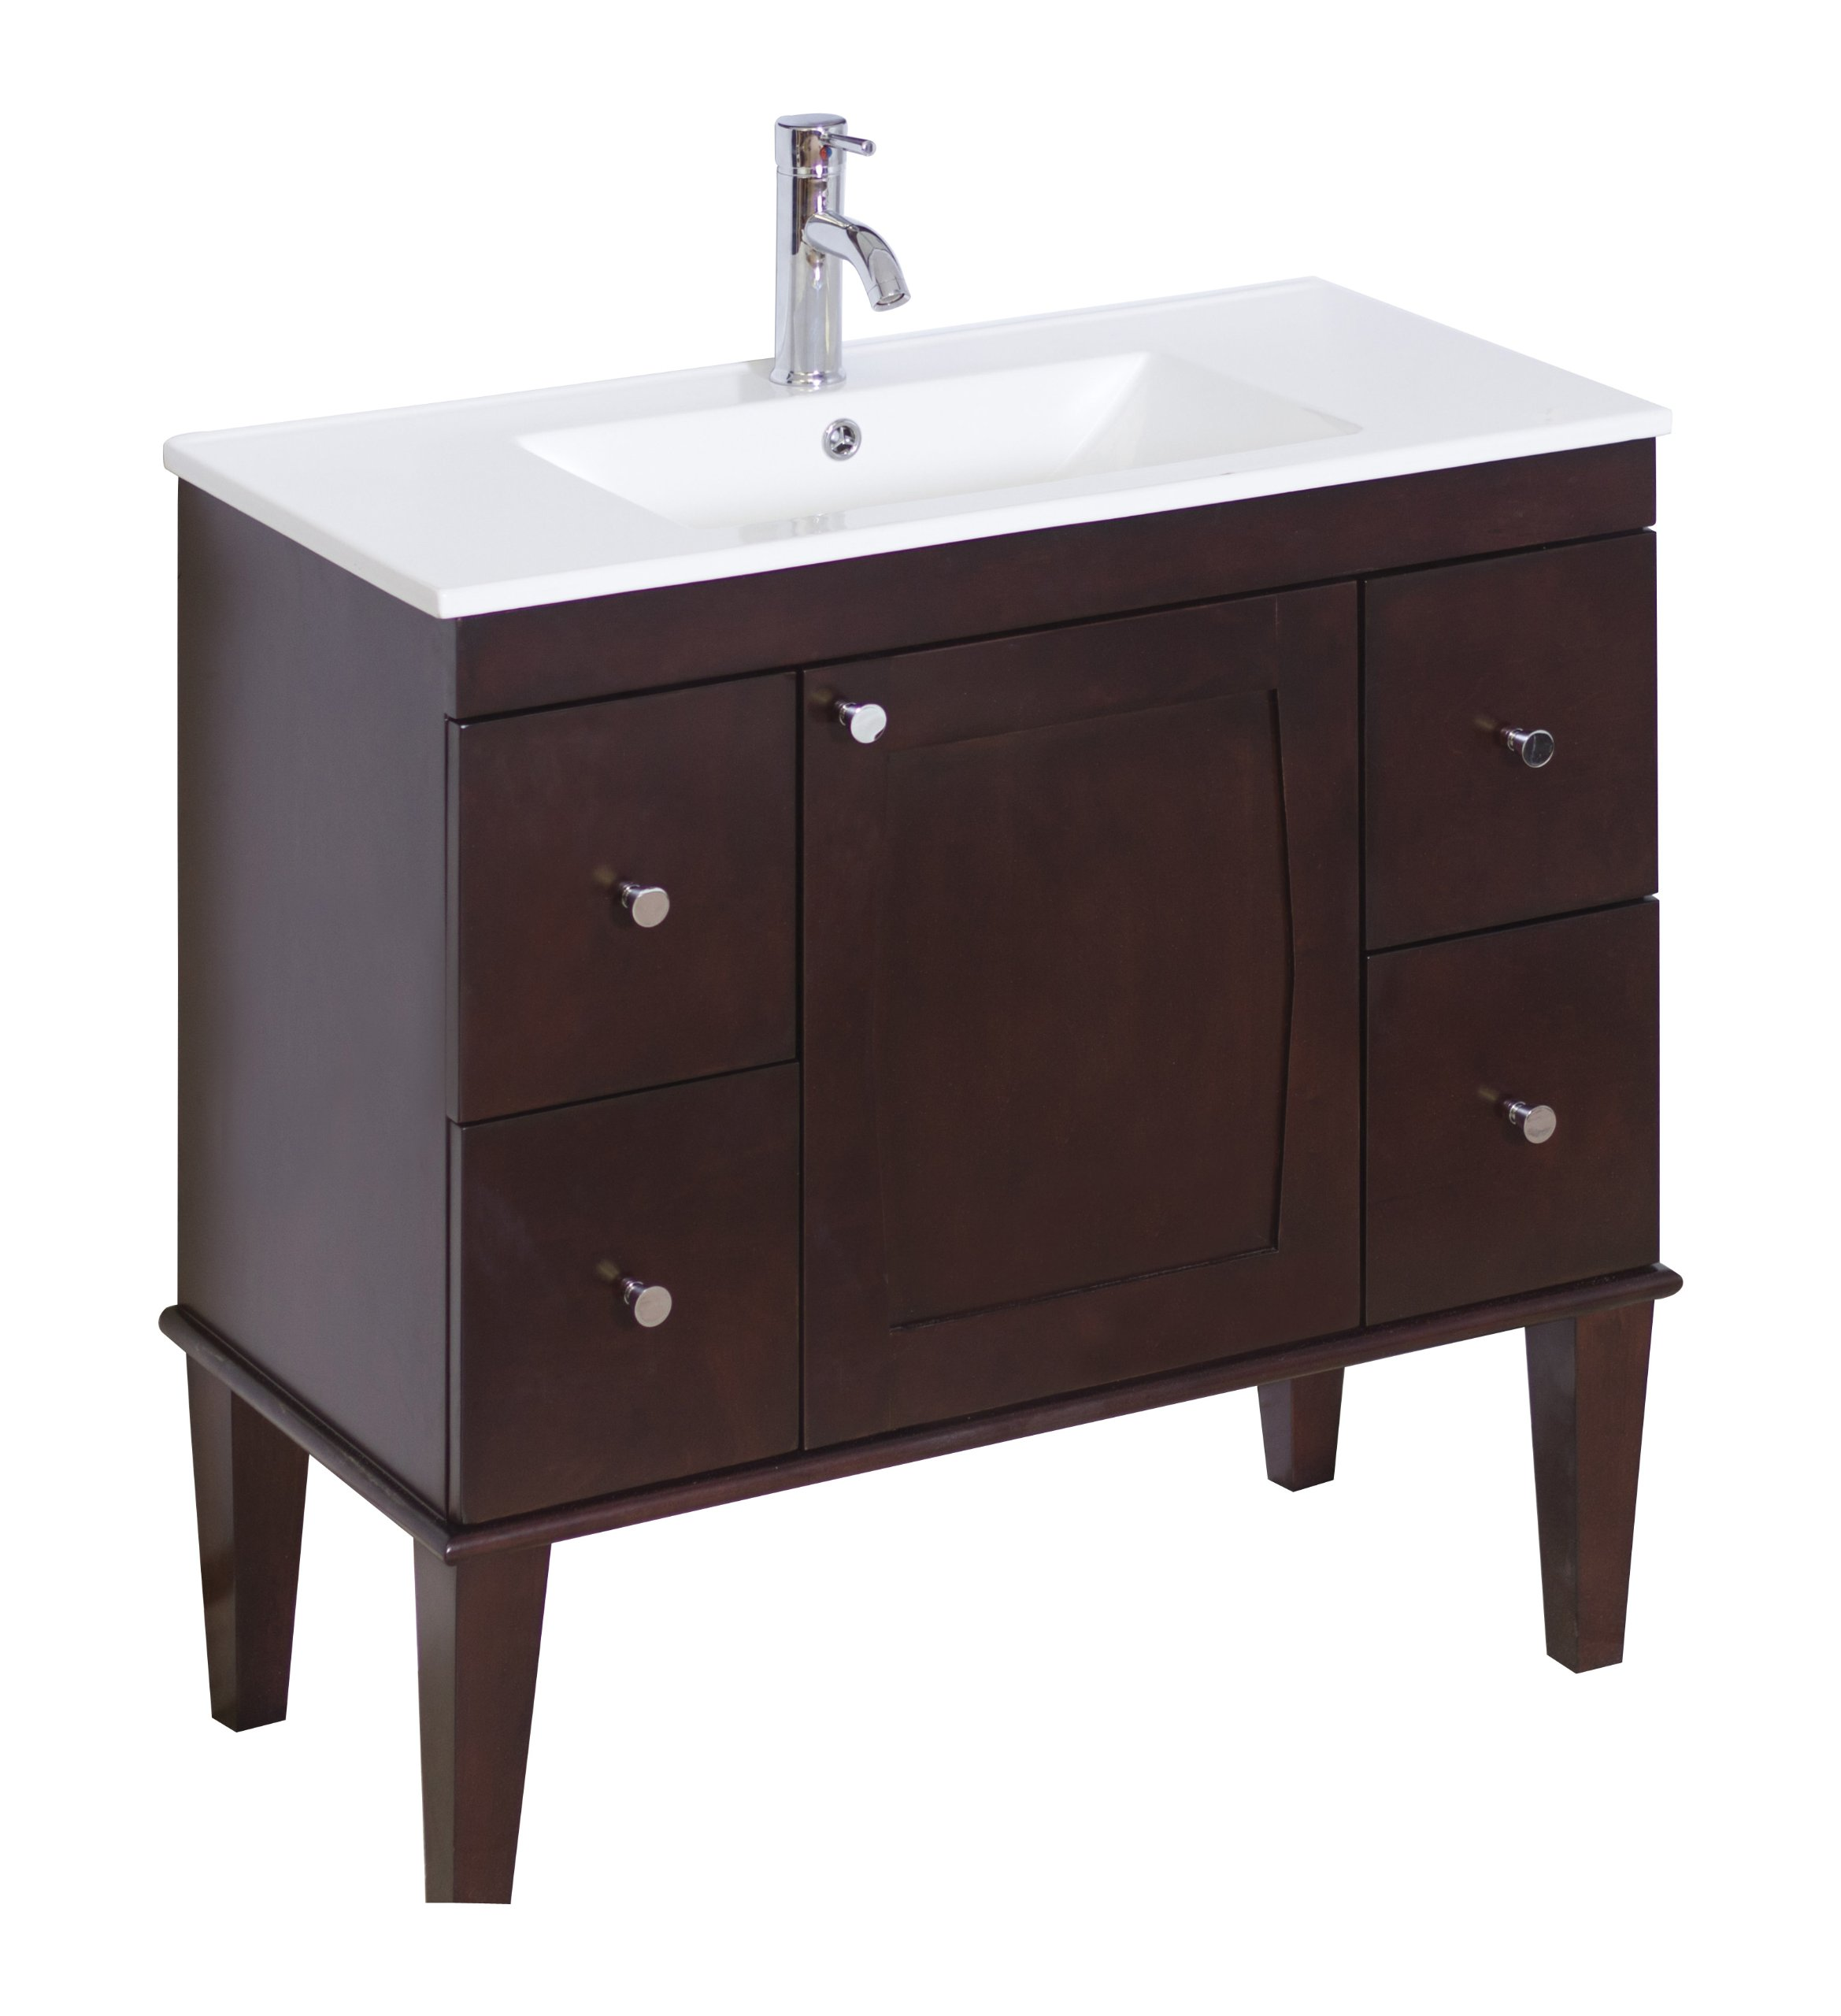 American Imaginations 398   36-Inch W X 18-Inch D Solid Wood Vanity Base with Soft-Close Doors, Antique Walnut Finish by American Imaginations (Image #2)